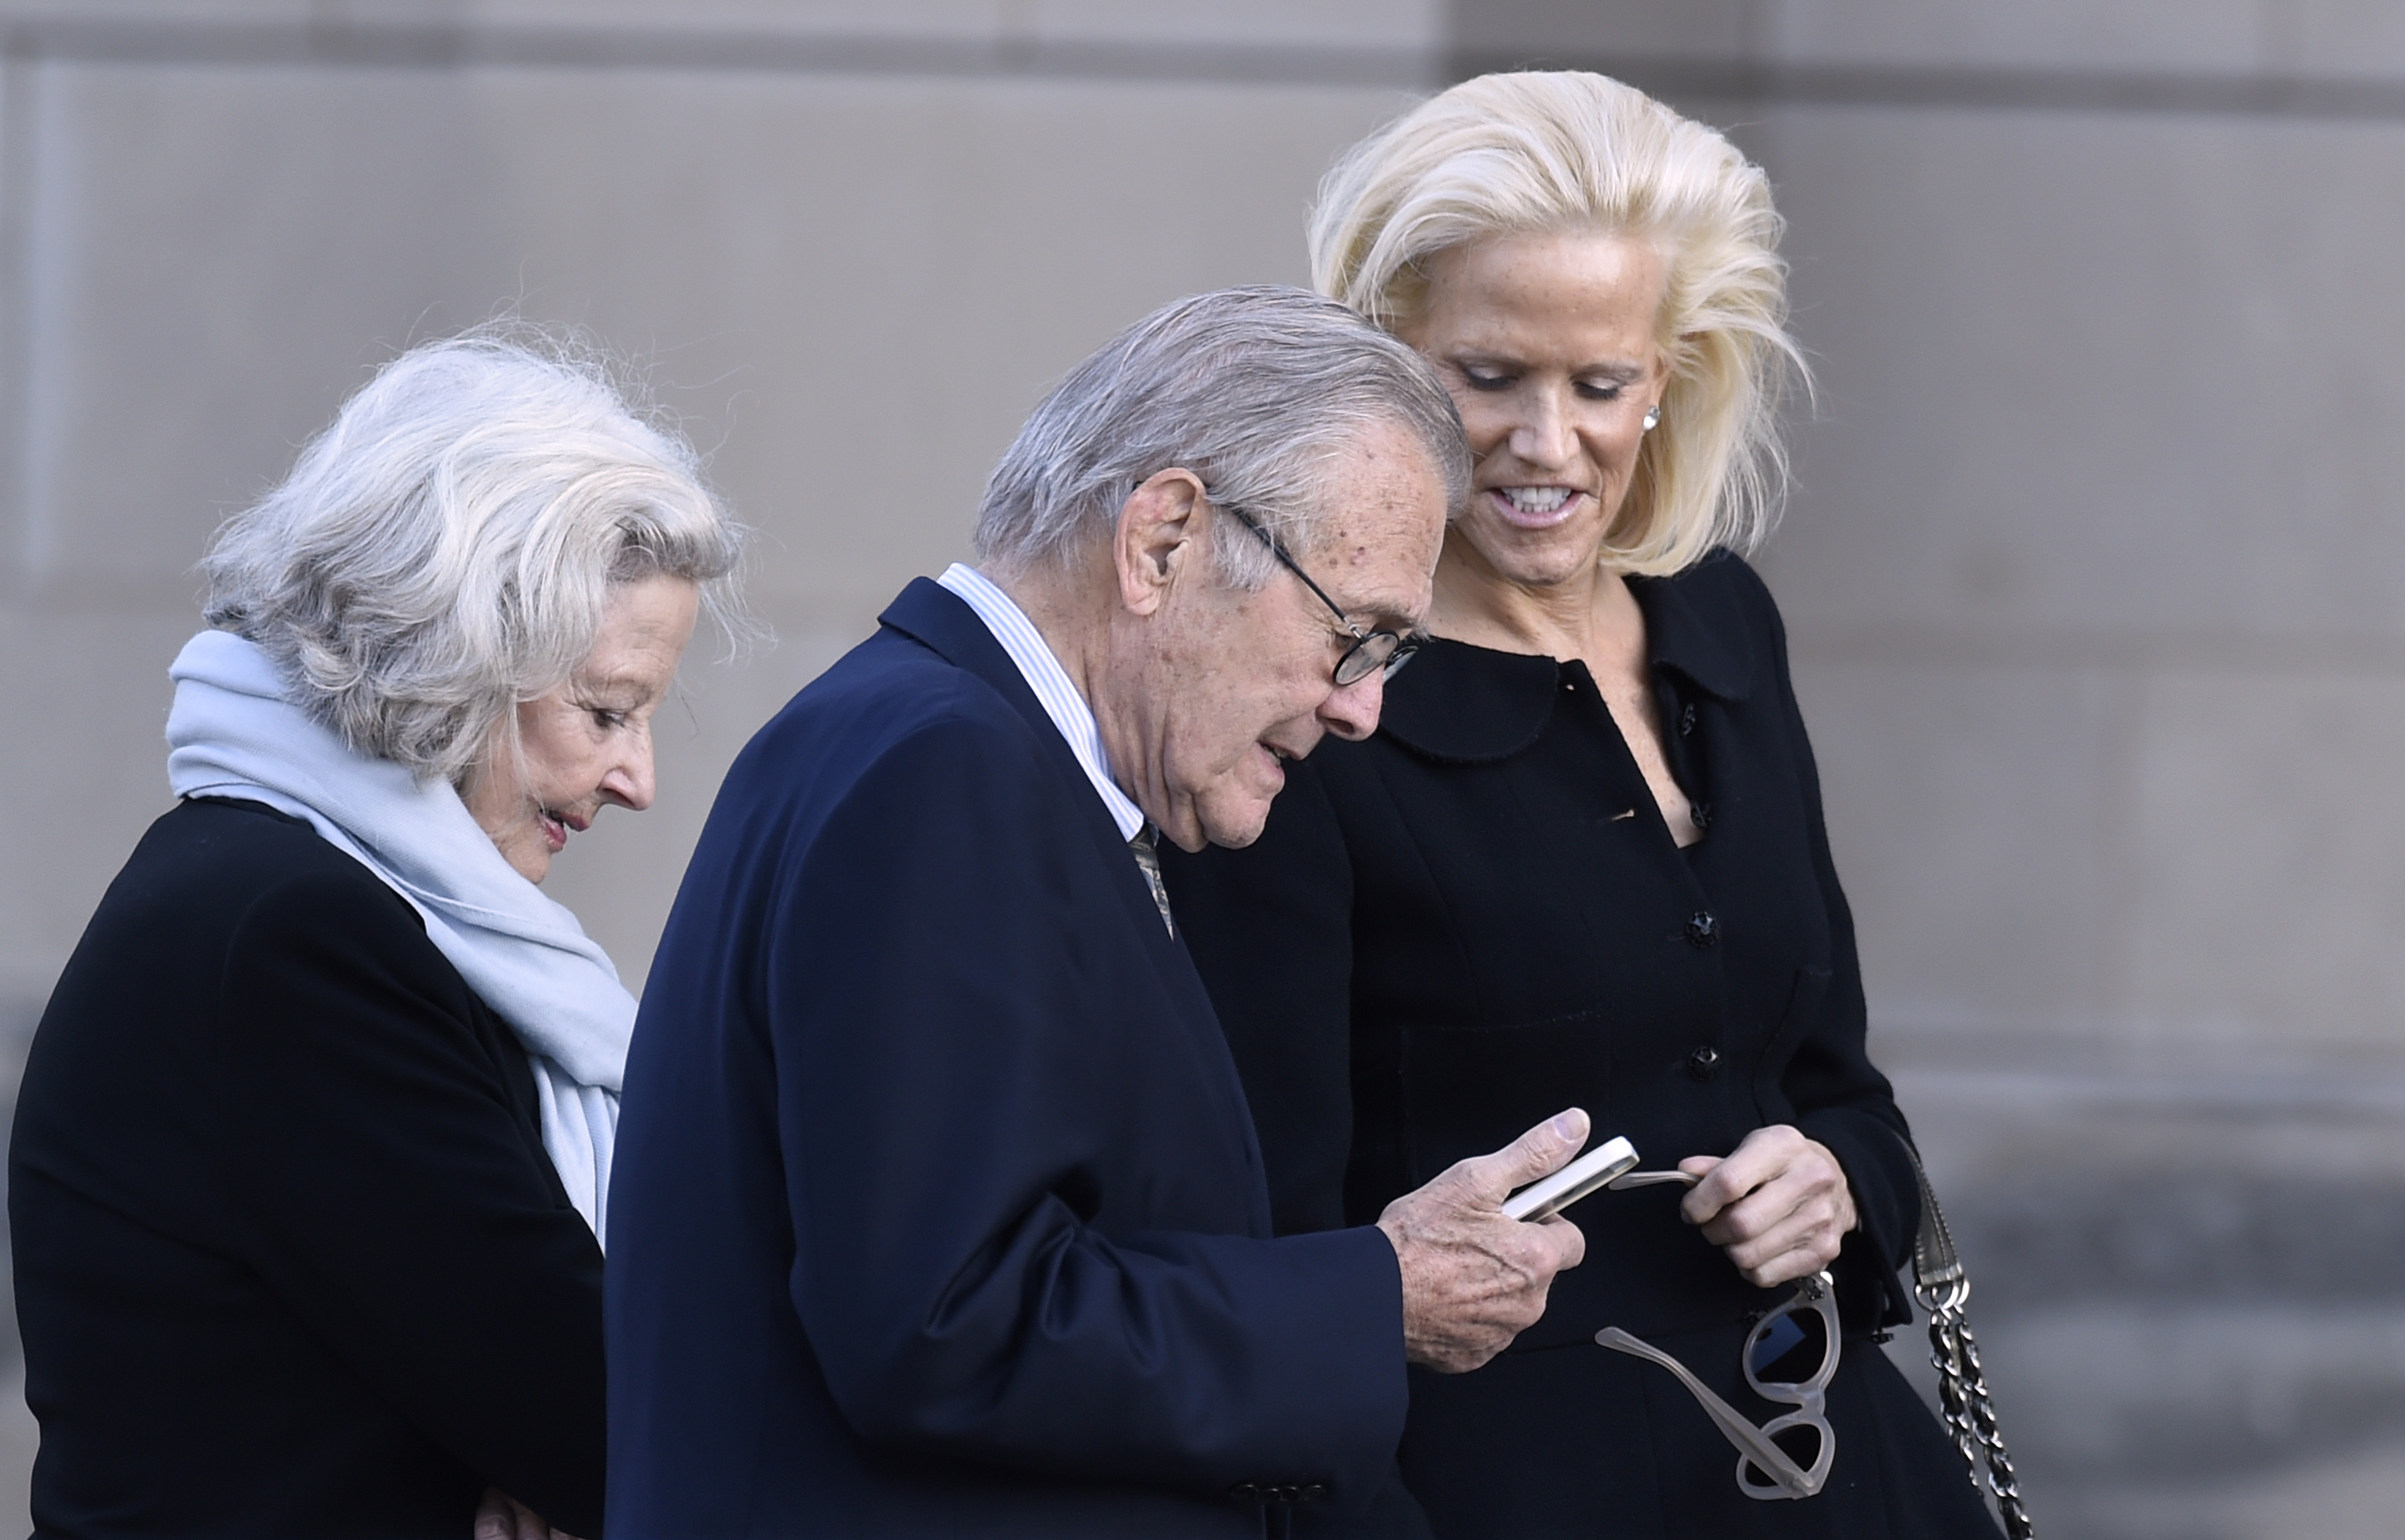 Former Defense Secretary Donald Rumsfeld and his wife Joyce, left, arrives for the funeral service for Ben Bradlee at the National Cathedral in Washington, Wednesday, Oct. 29, 2014. Bradlee led The Washington Post during some of its biggest years and proudest moments. (AP Photo/Susan Walsh)